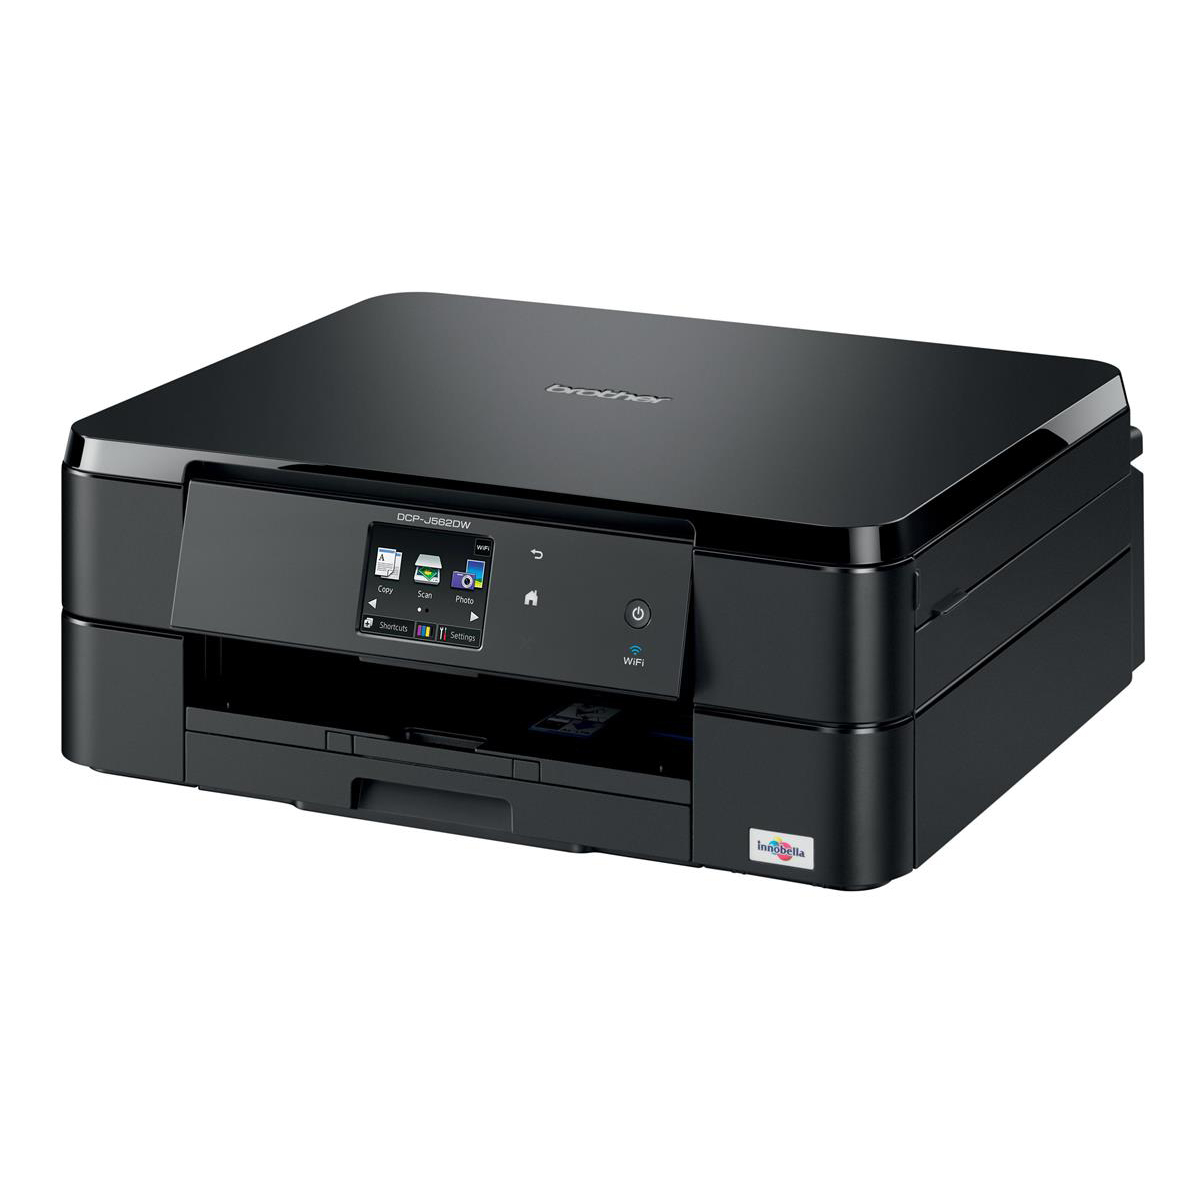 Image for Brother DCPJ562DW Multifunction A4 Inkjet Printer Ref DCPJ562DWZU1